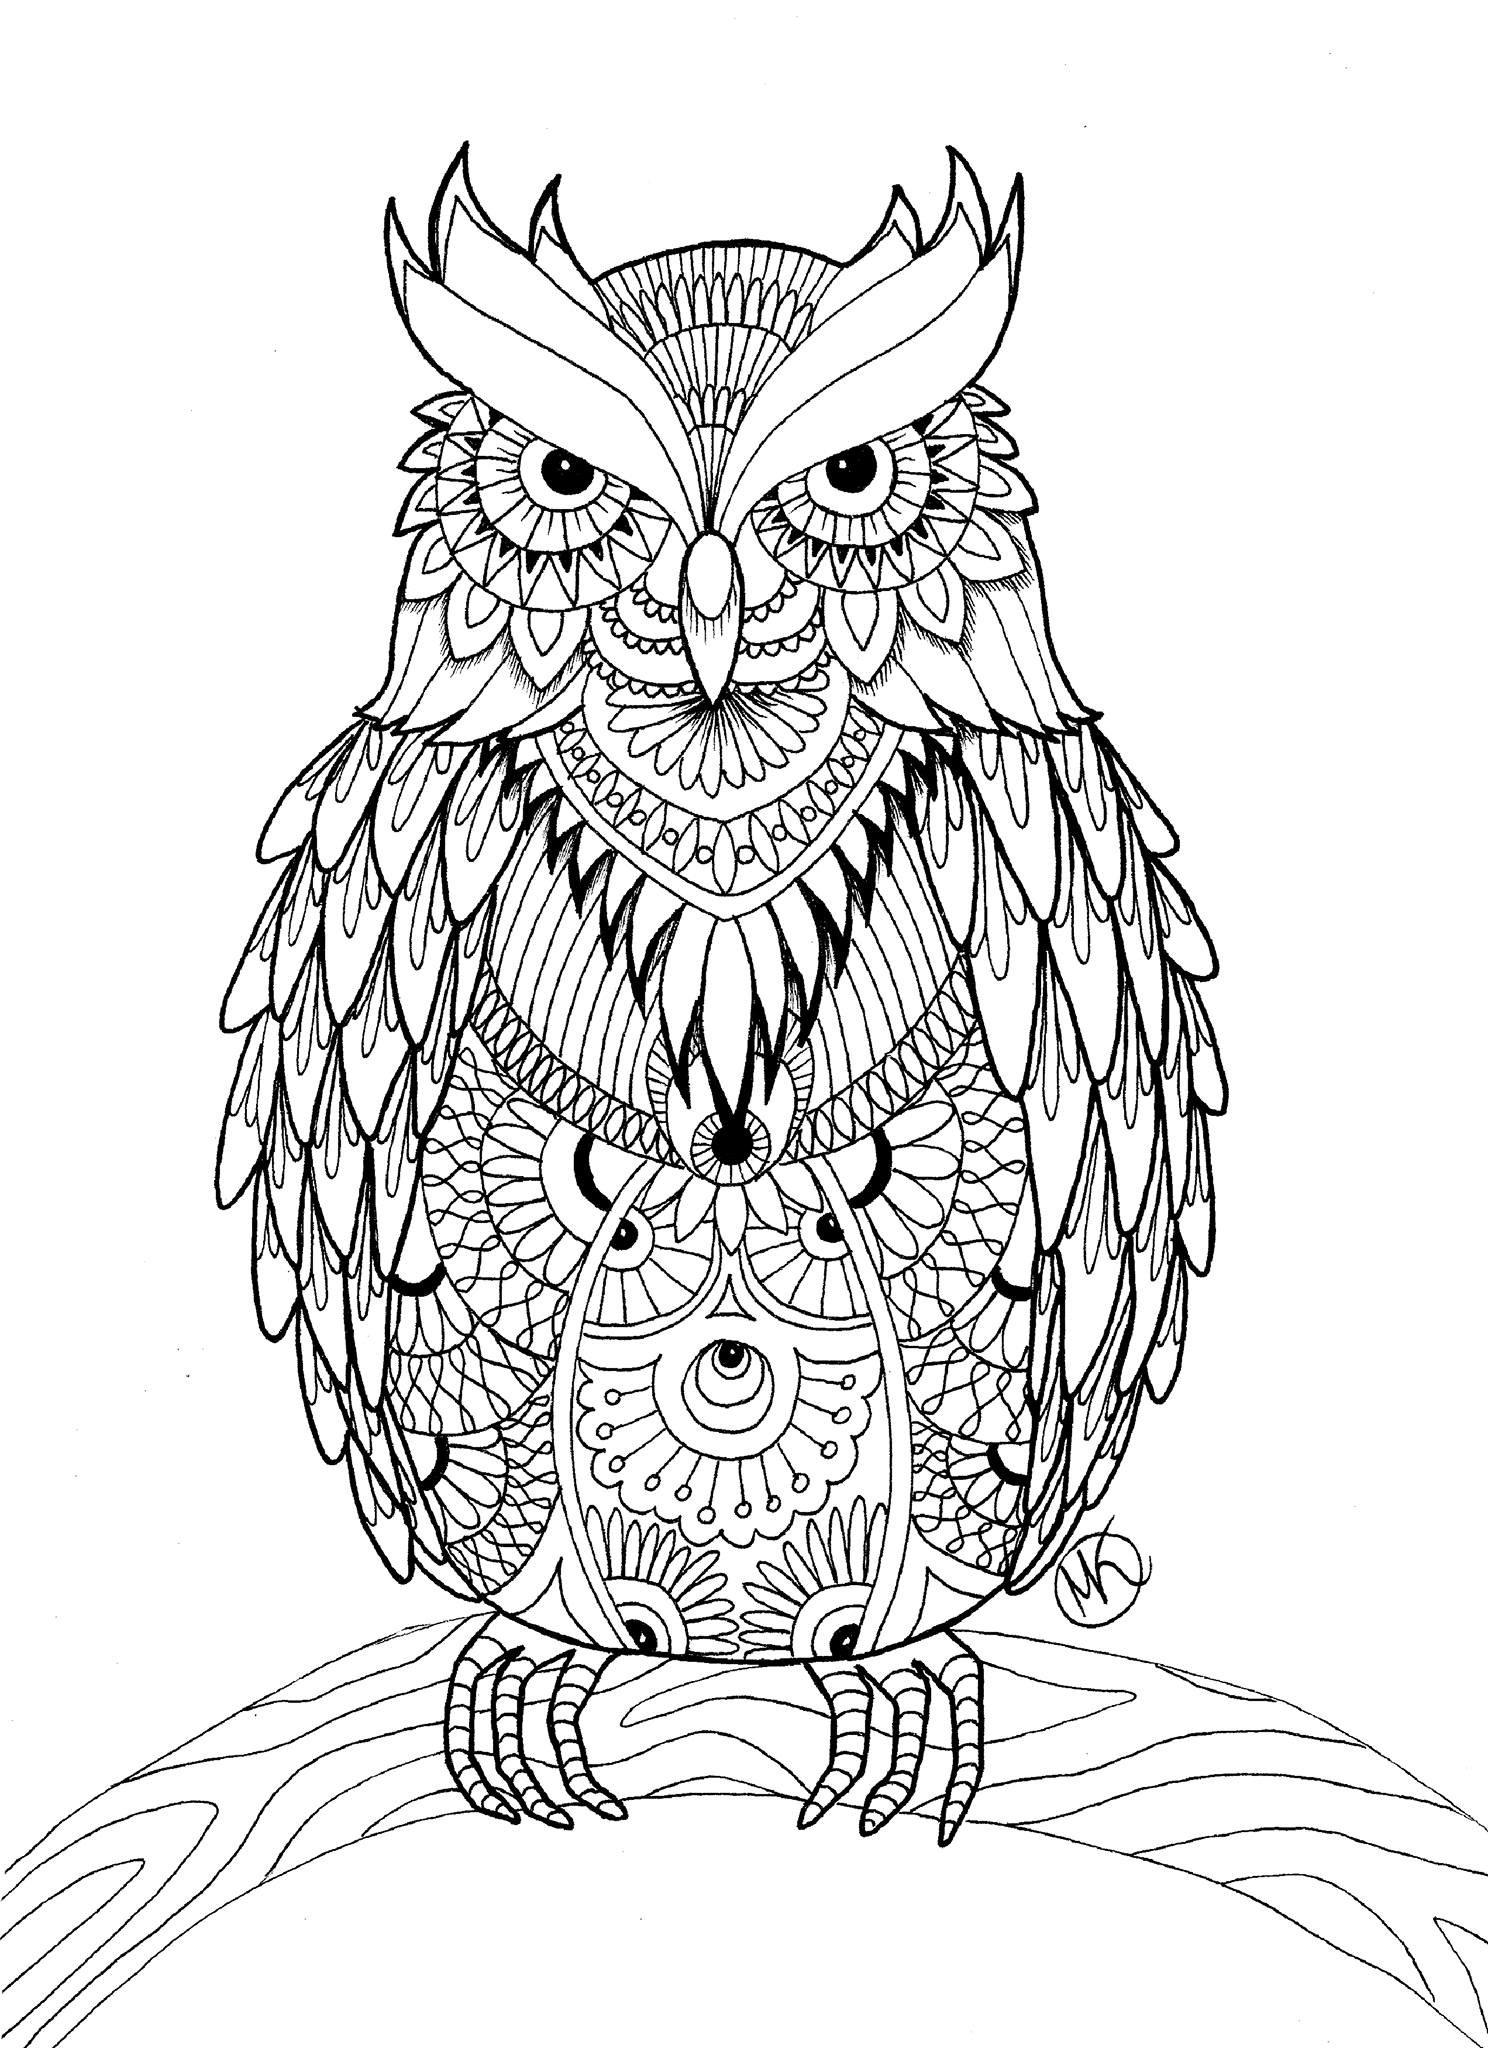 coloring pages to color online create coloring book pages by aktanova coloring online color pages to